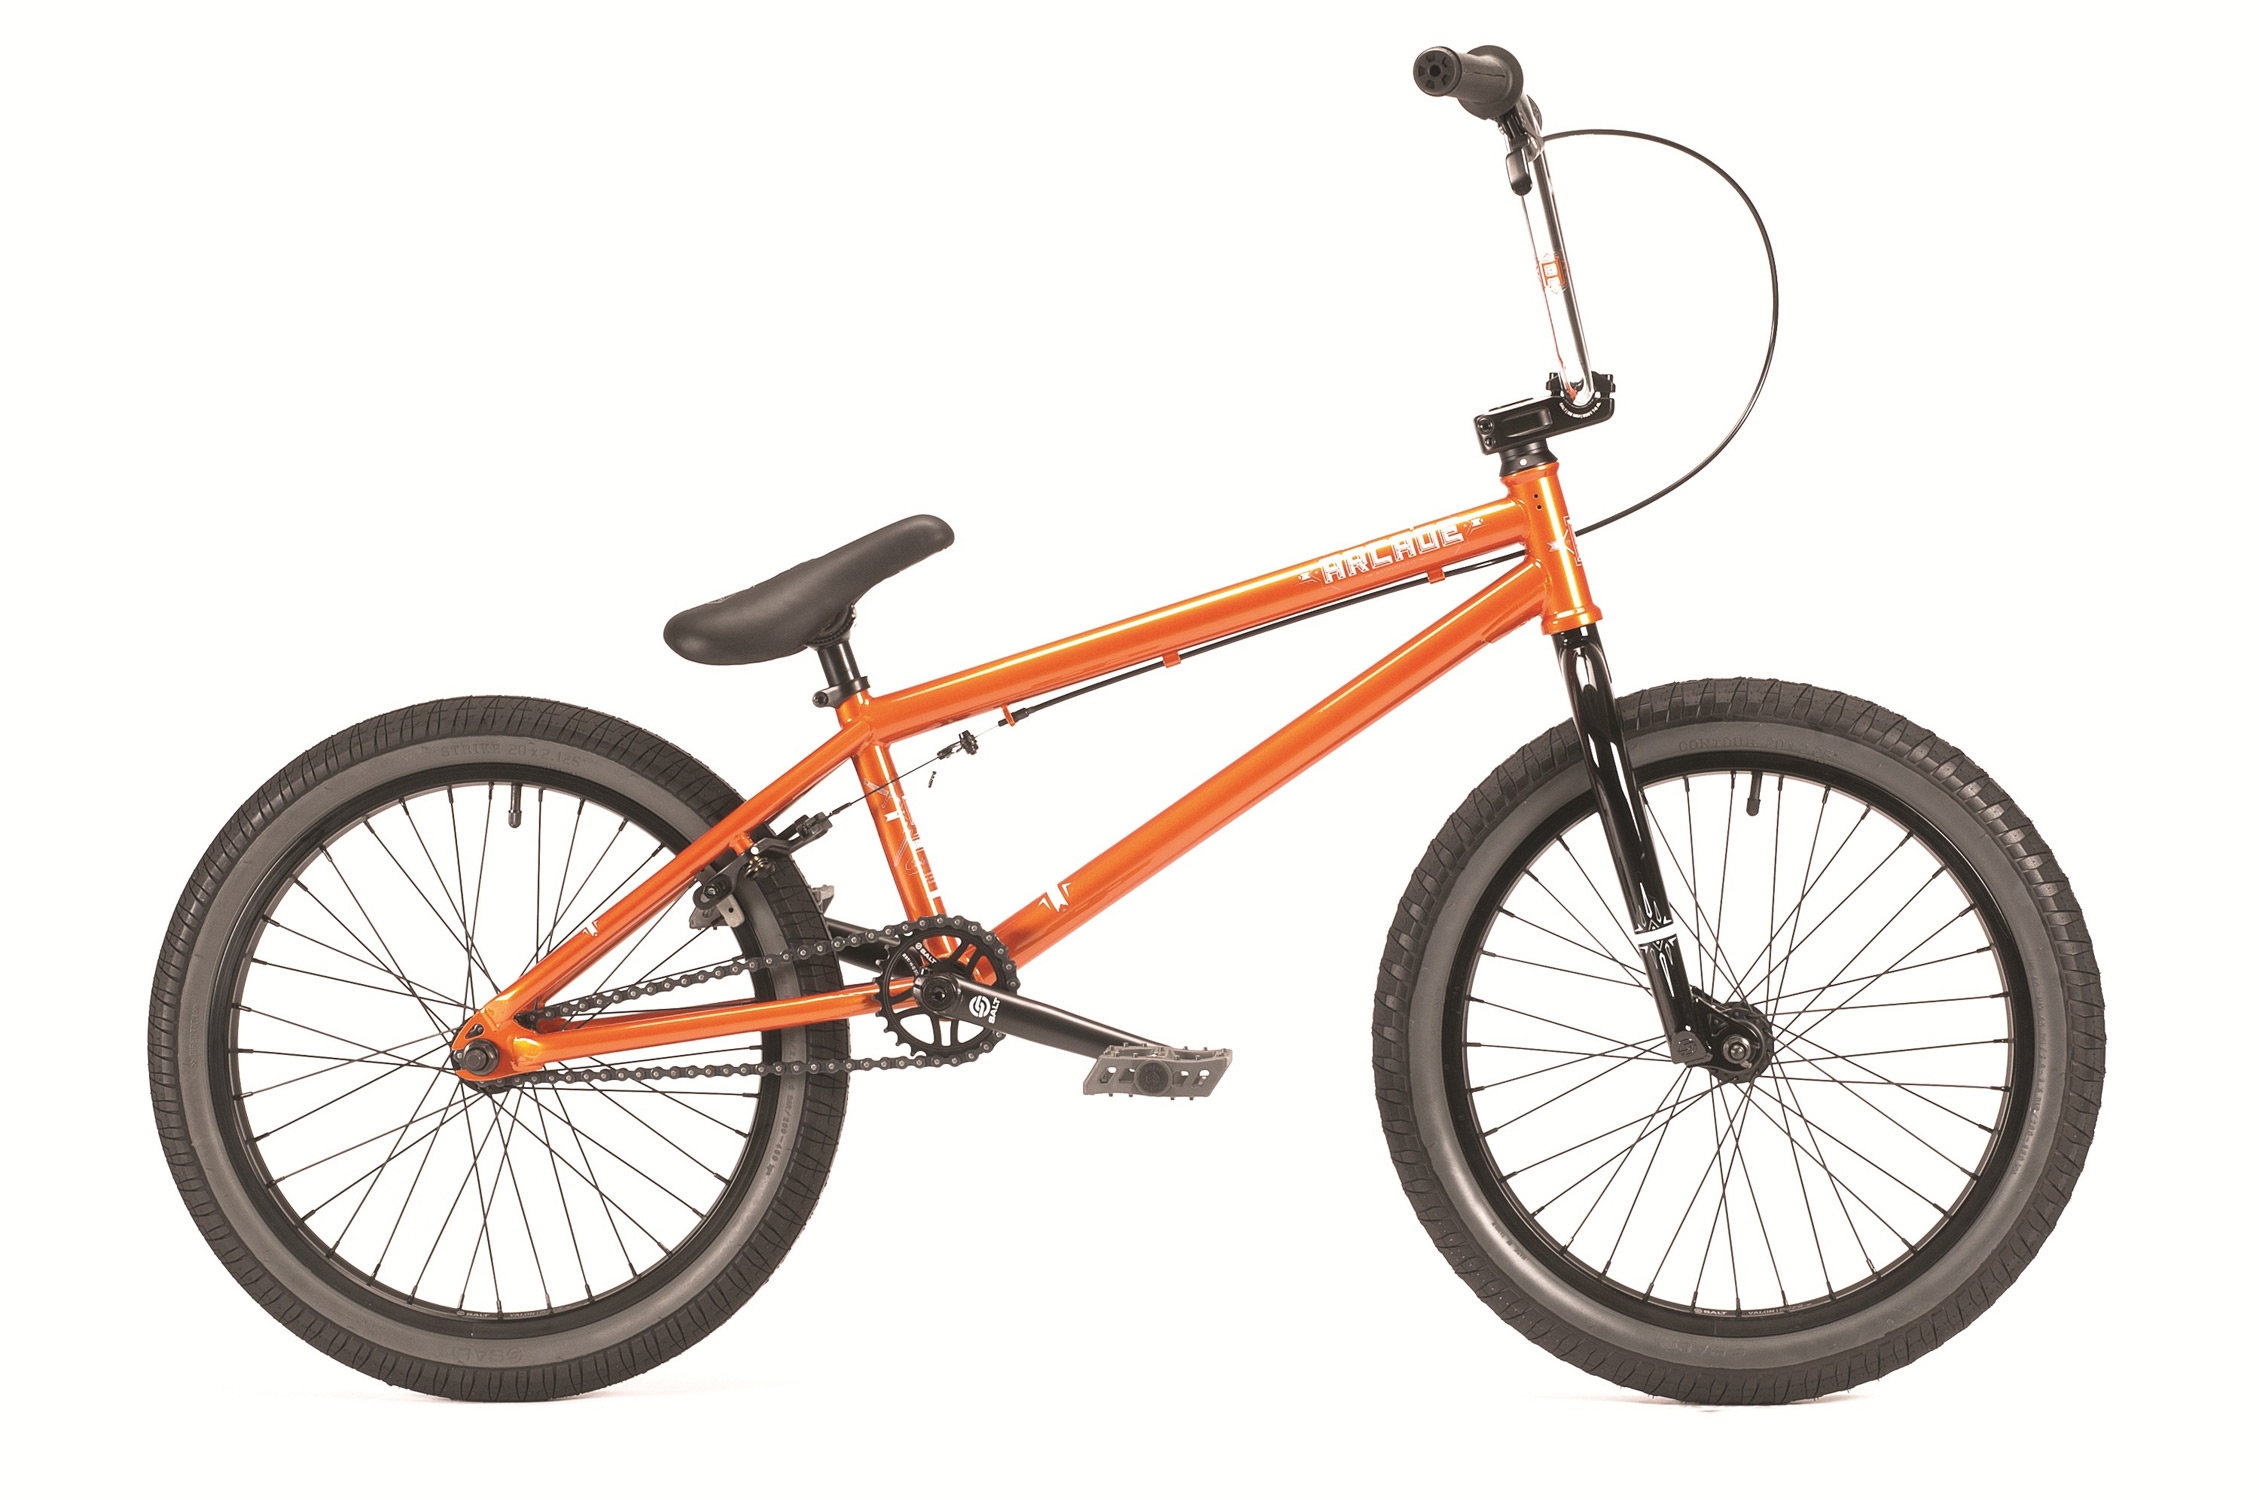 BMX With its superior agility and unique design the Arcade gets you off to the perfect start in the world of BMX. The Arcade includes: SB integrated headset; SB-BB; 25t/9t gearing; WTP Arcade pivotal seat; eCLAT Surge pedals; new Arrow grips and a full SB cassette hub. A stunning set of carefully designed graphics adds the finishing touches to a bike that is designed for a rider that's about to take his love of BMX one step further. - $359.95